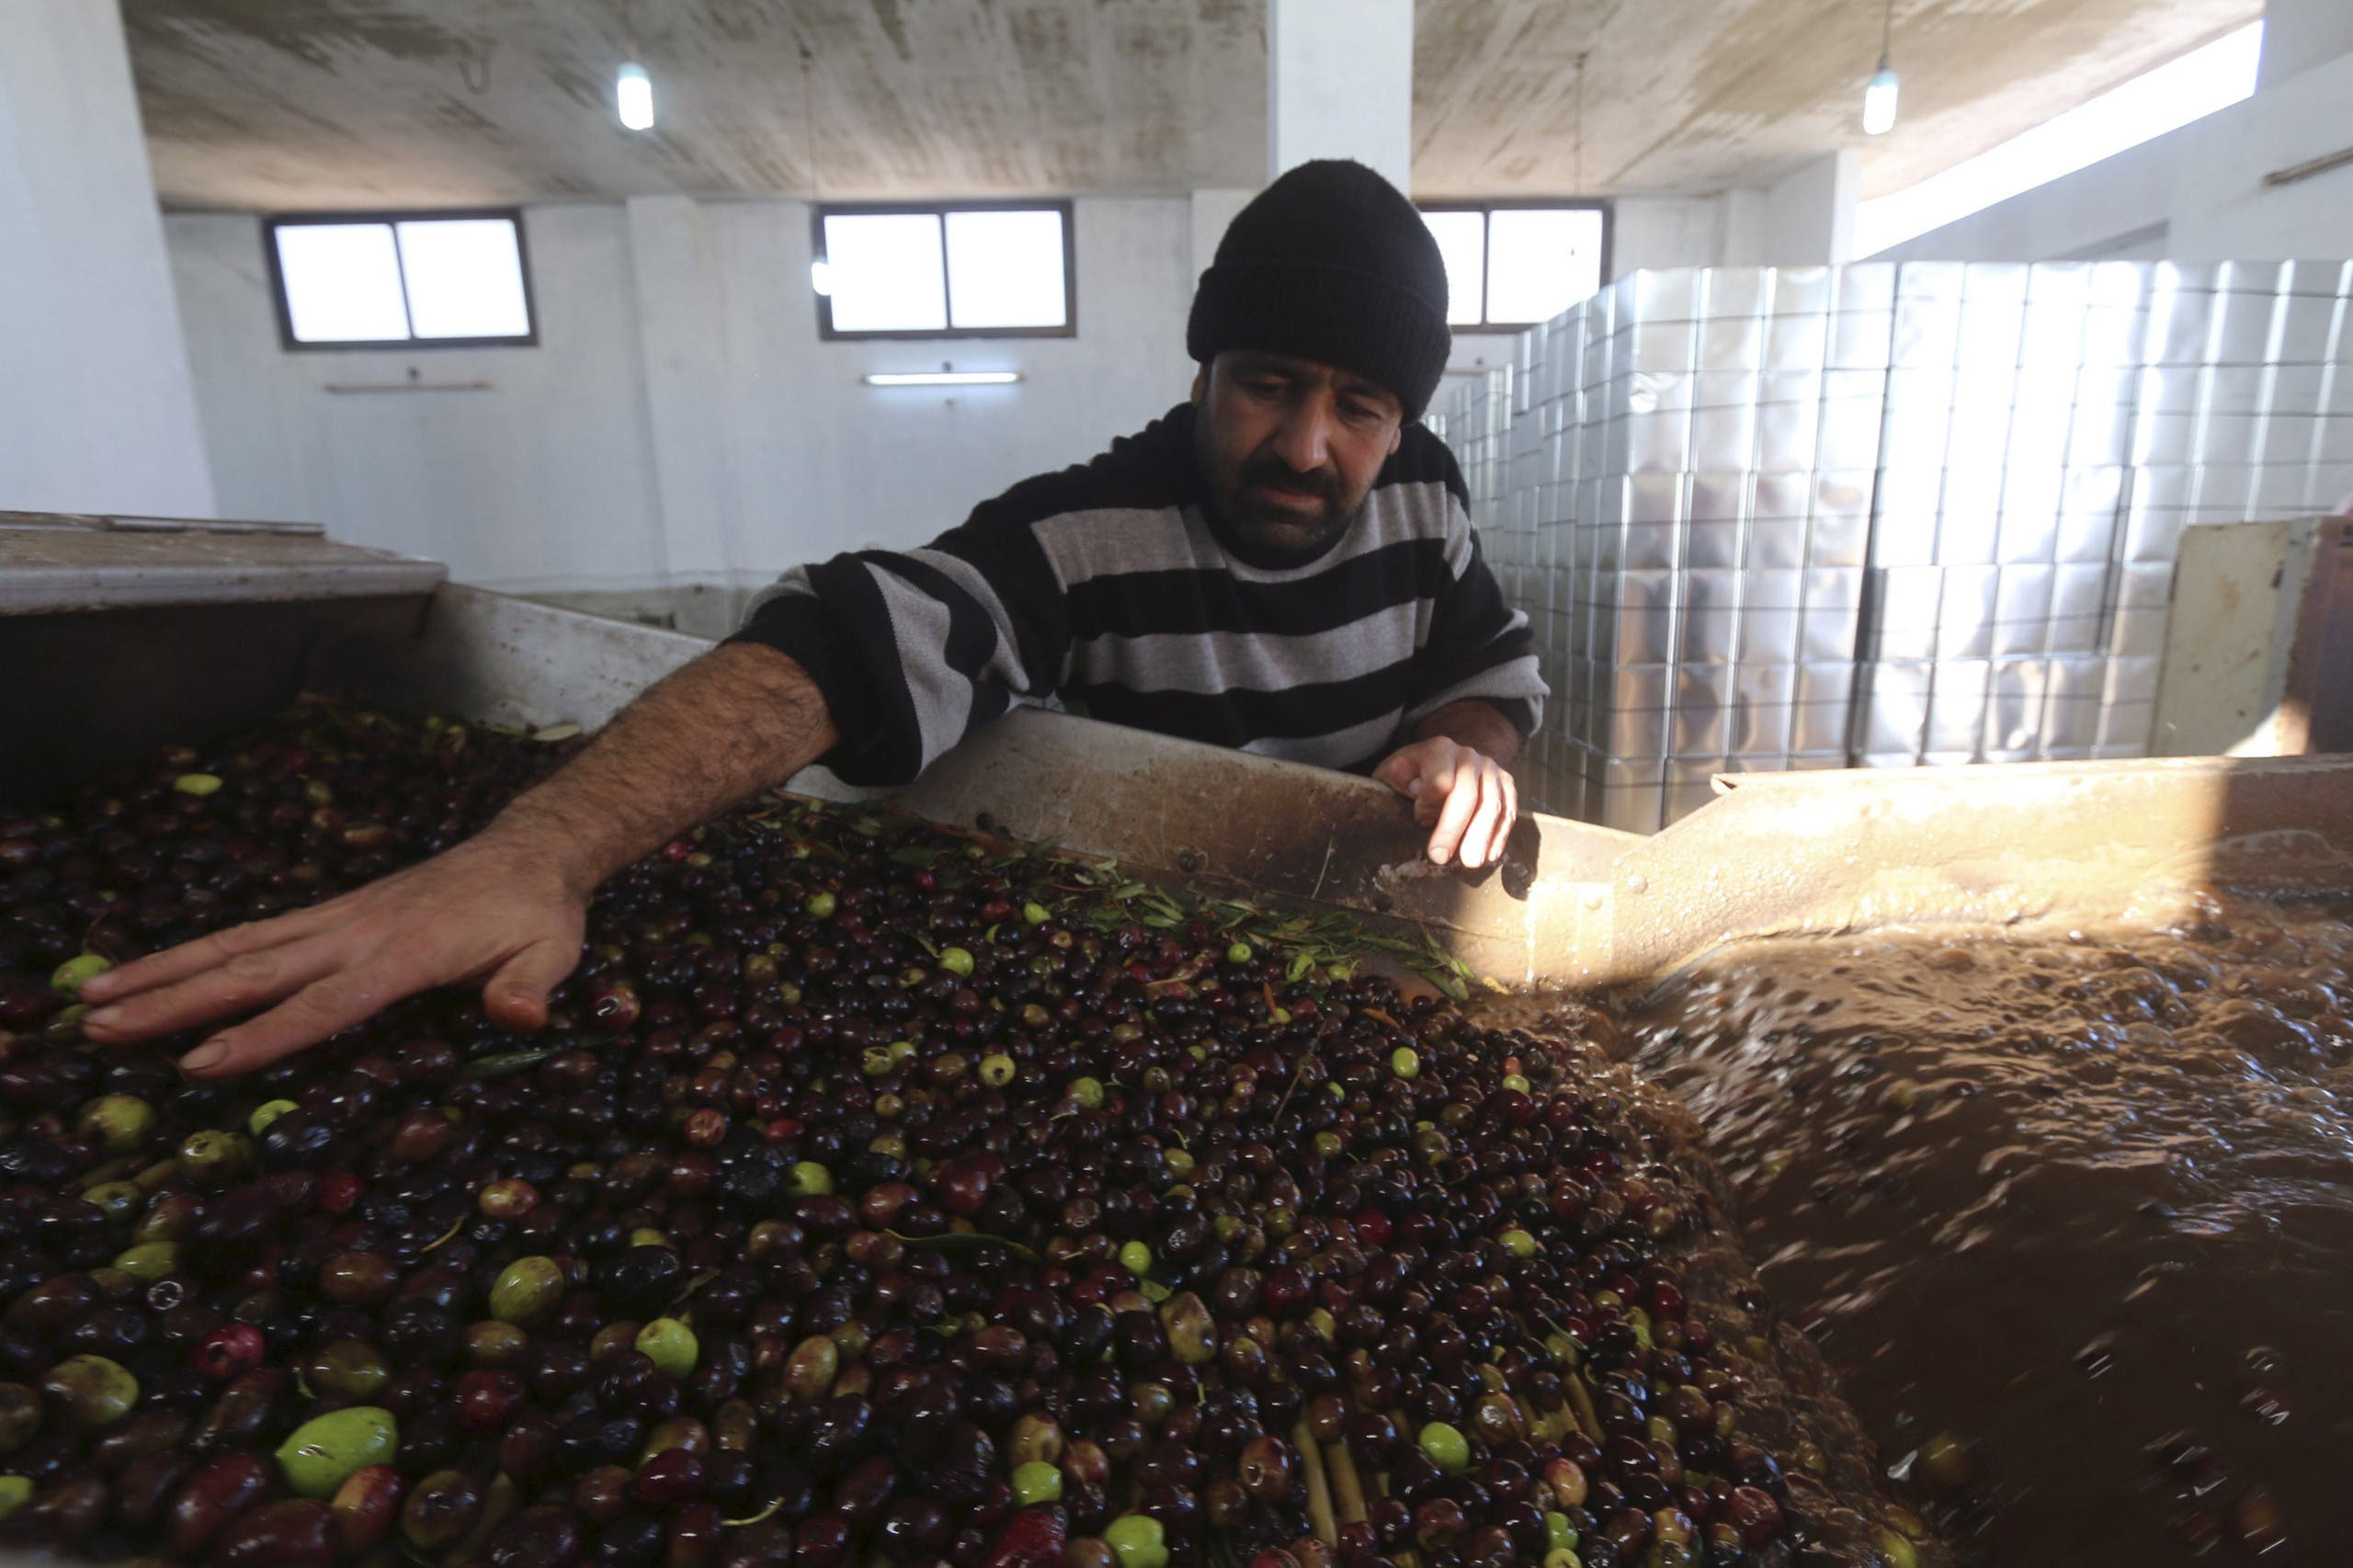 A worker watches as a machine cleans olives before pressing them to be made into oil, at Zamzam olive press factory in the western province of Idlib, Syria November 19, 2015. (Reuters)